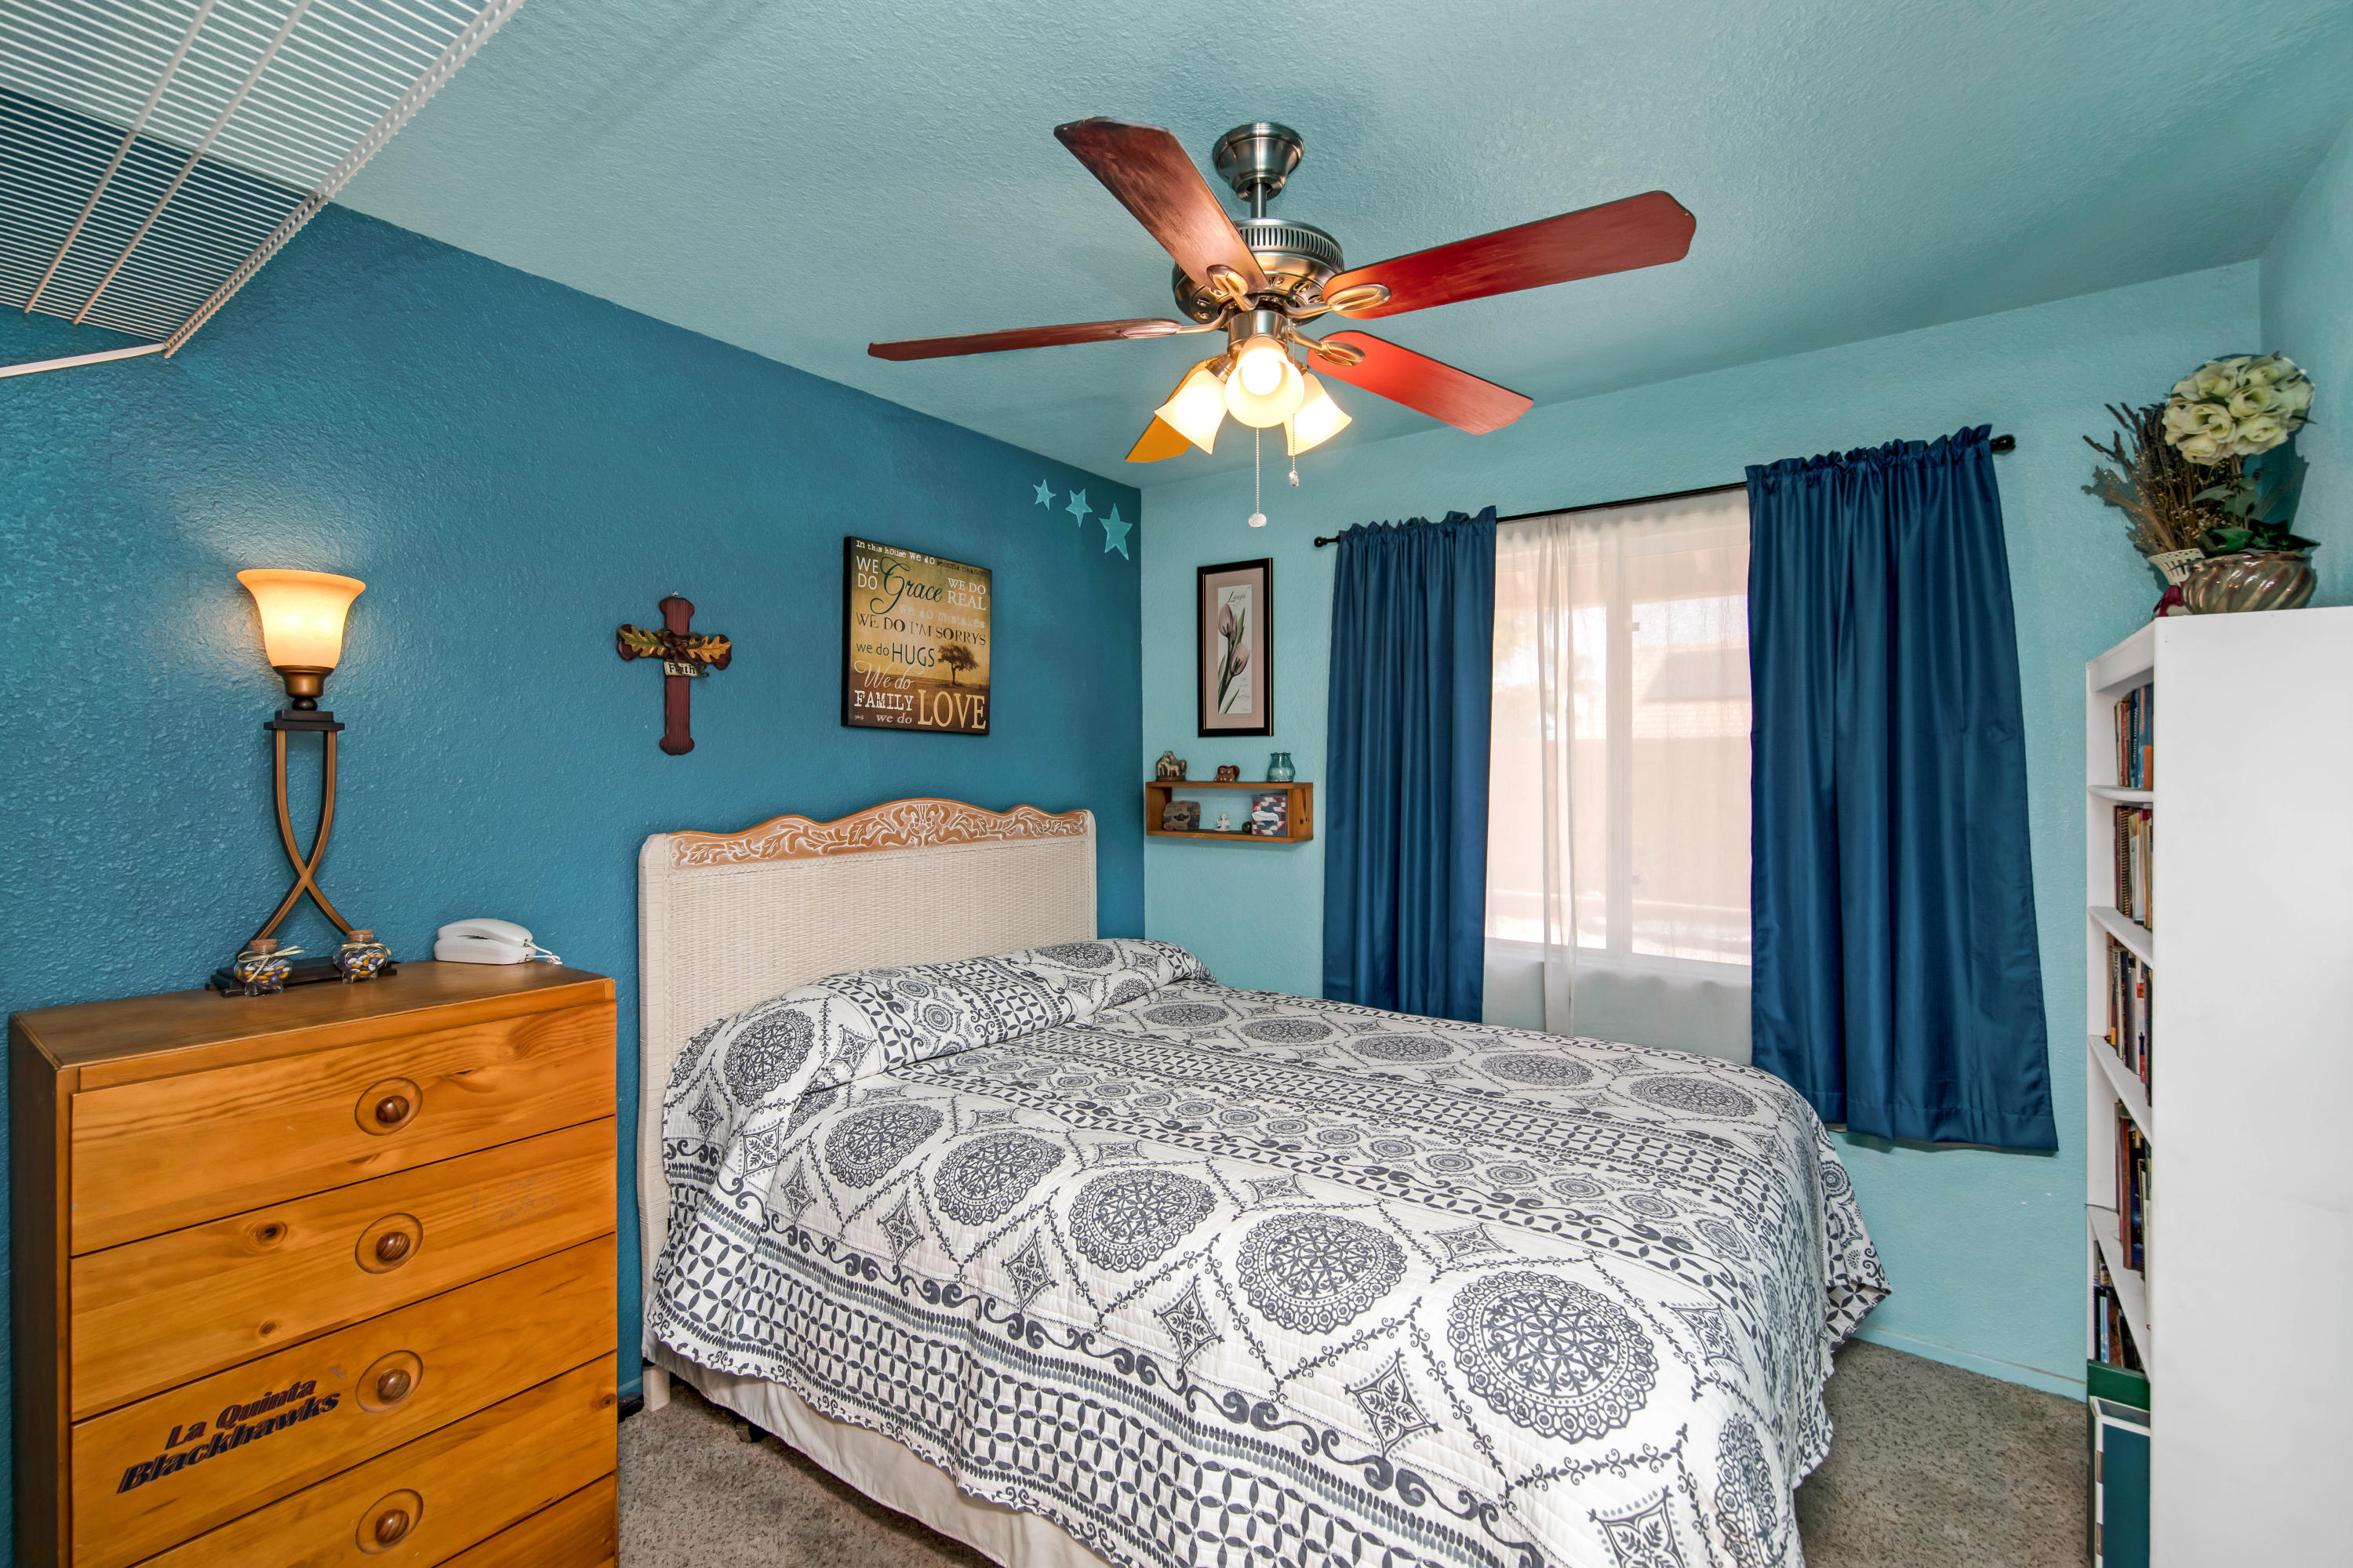 69678 Stonewood Court, Cathedral City, California 92234, 3 Bedrooms Bedrooms, ,2 BathroomsBathrooms,Residential,For Sale,69678 Stonewood Court,219045511